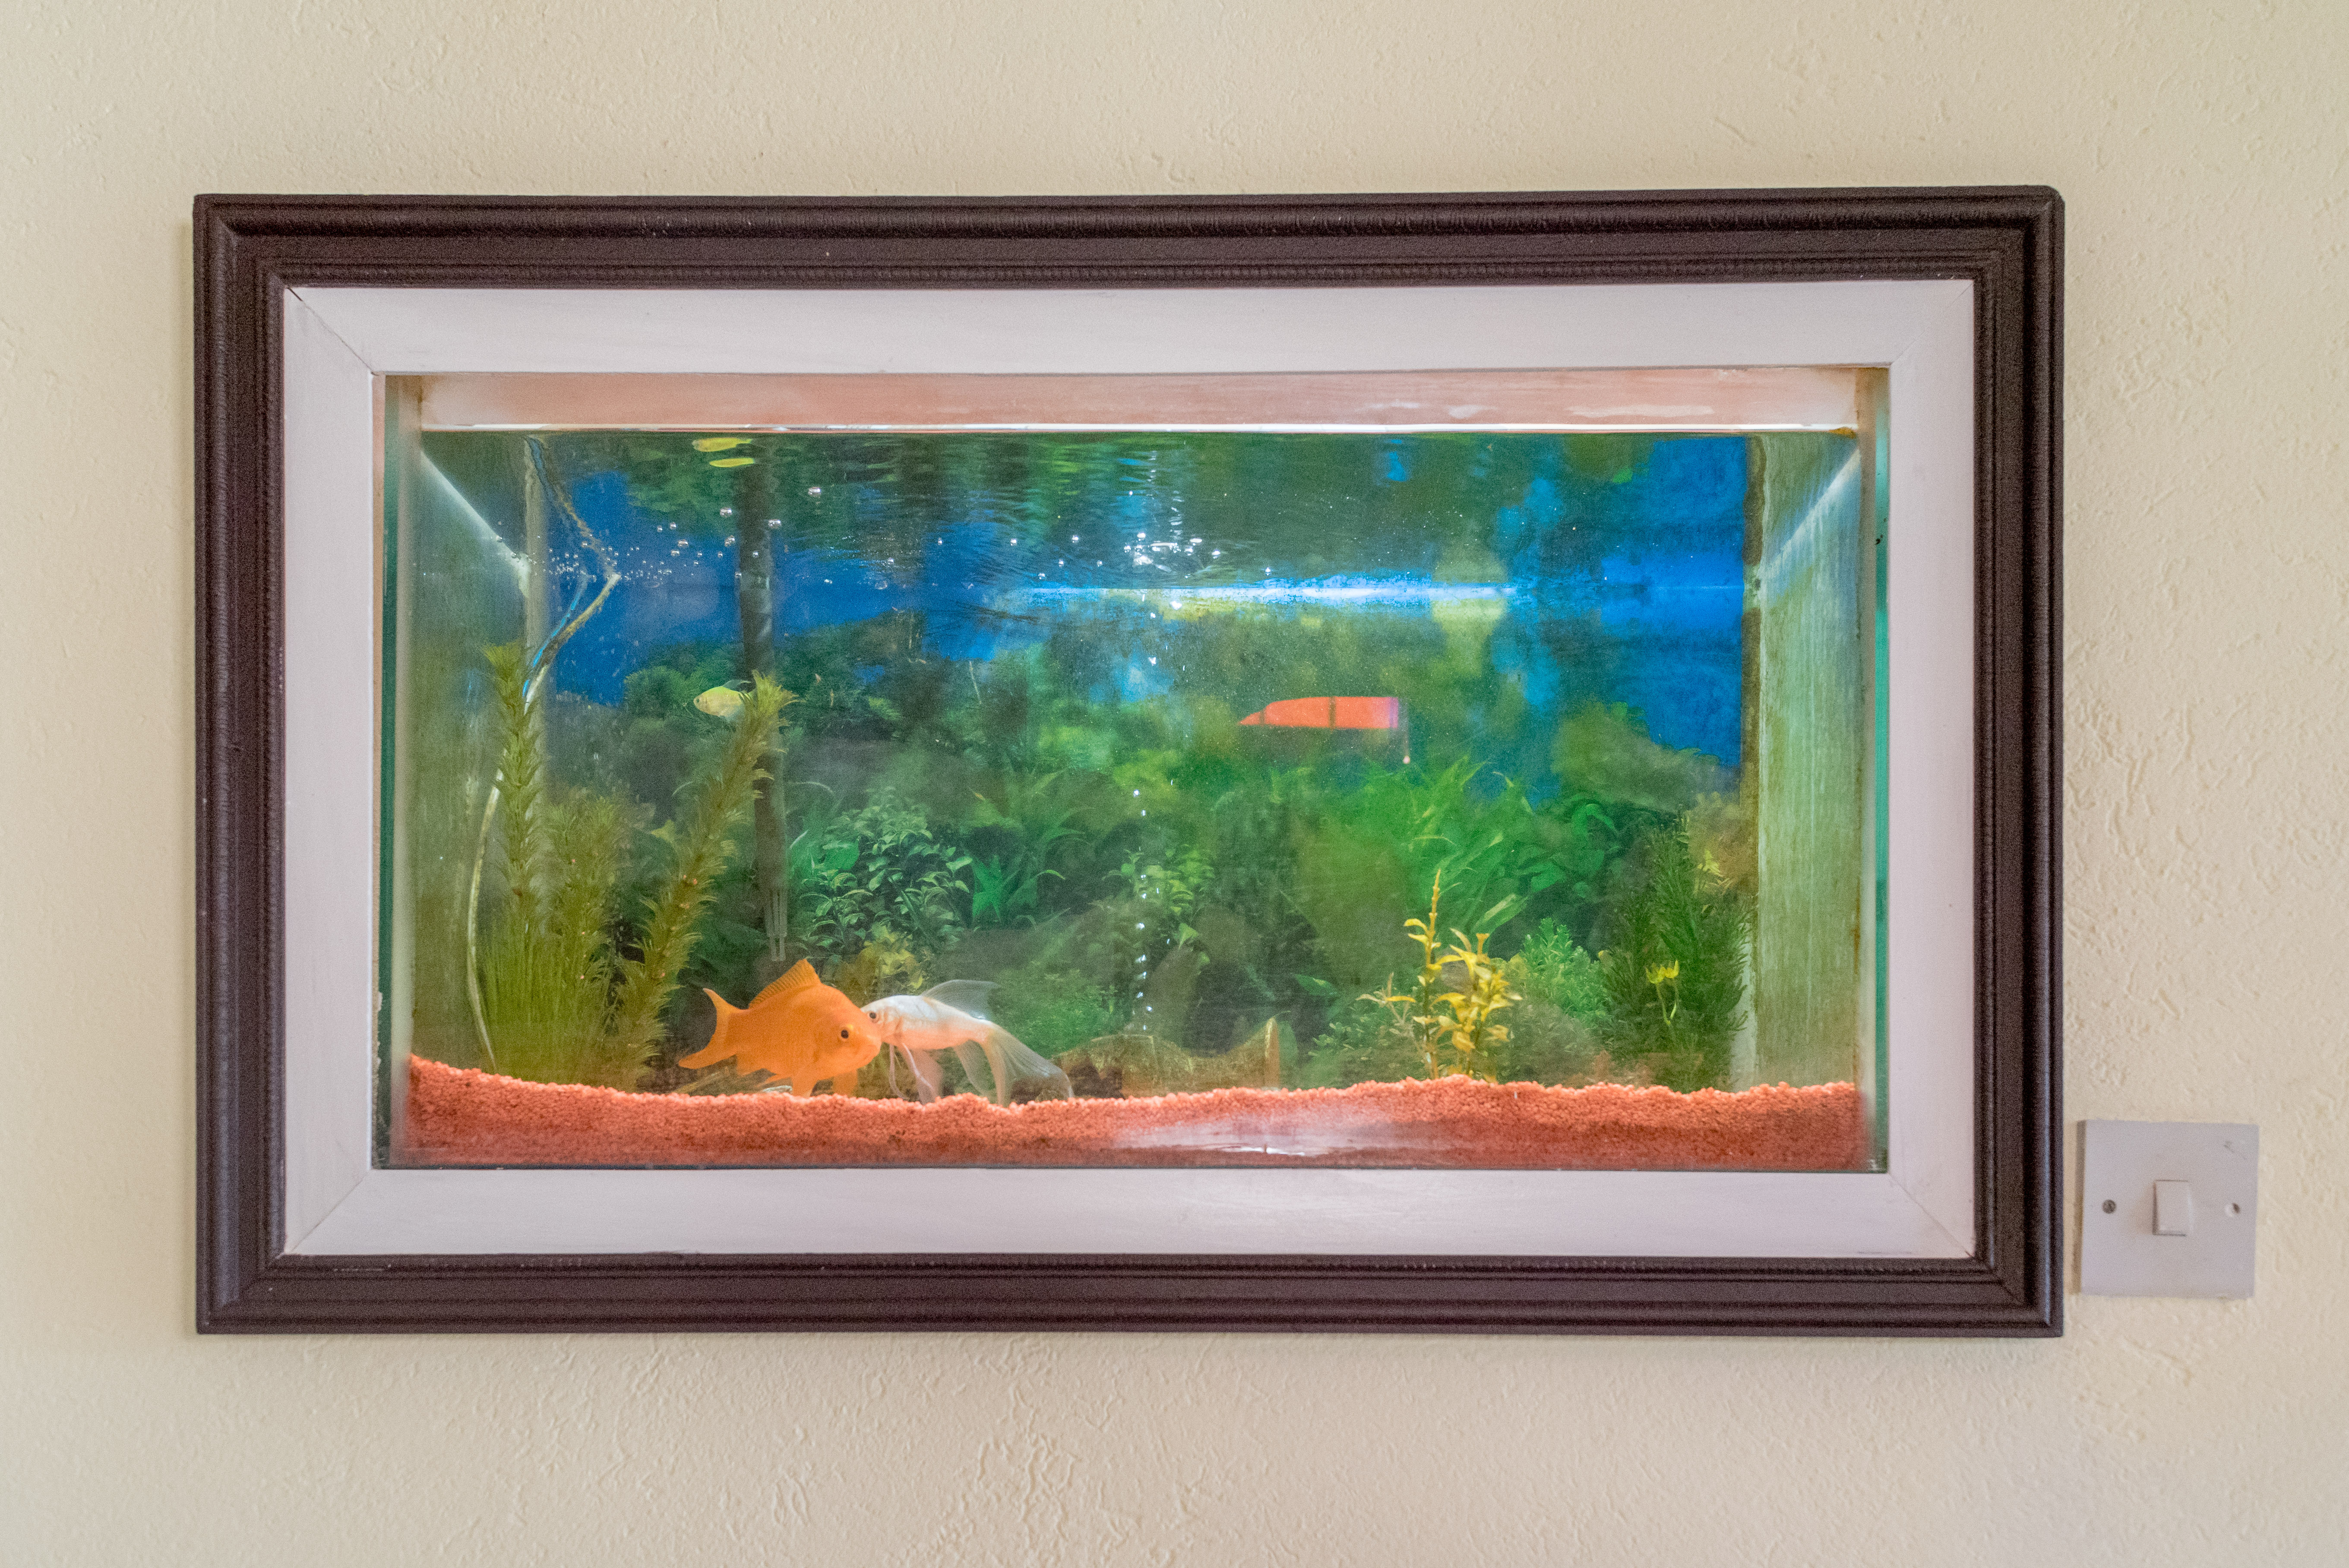 EMERALD LIVING | Built-in Aquarium